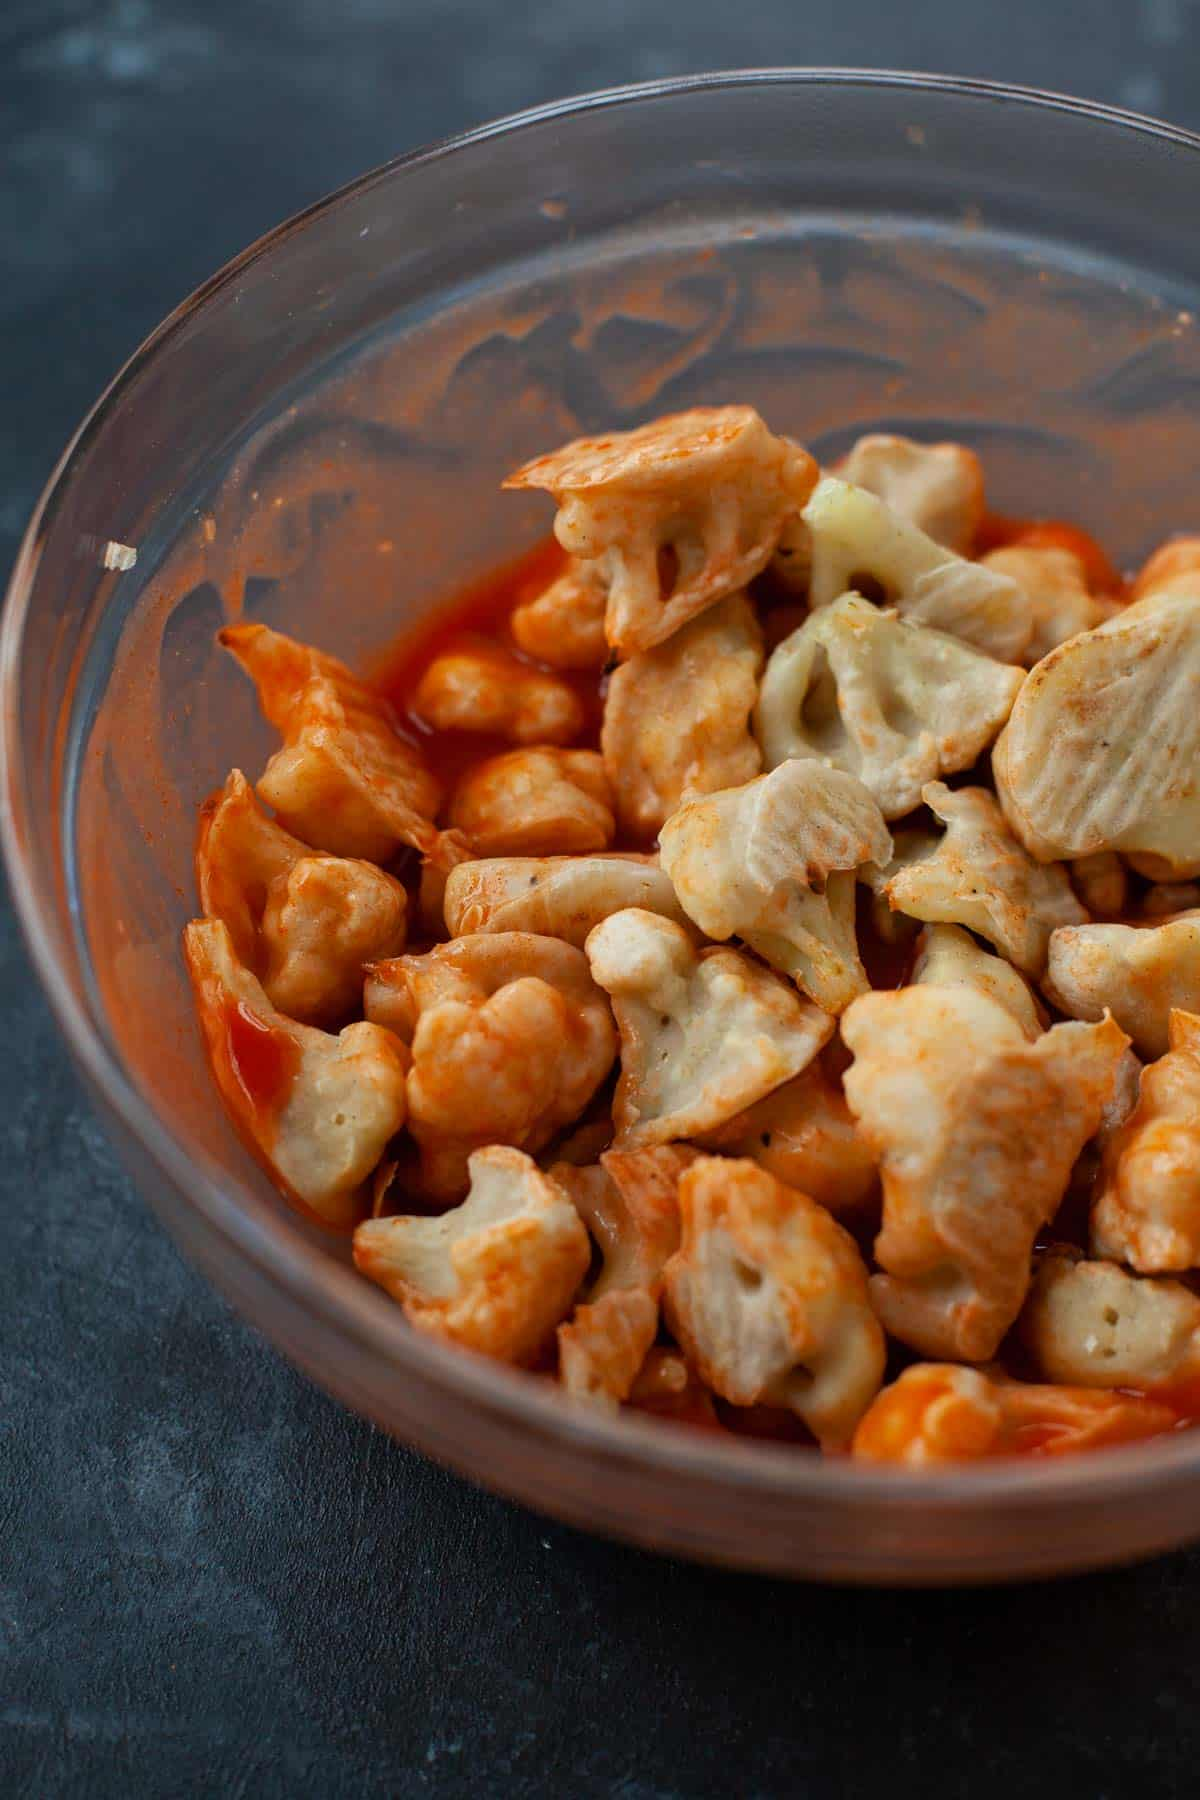 cauliflower pieces in bowl with hot sauce